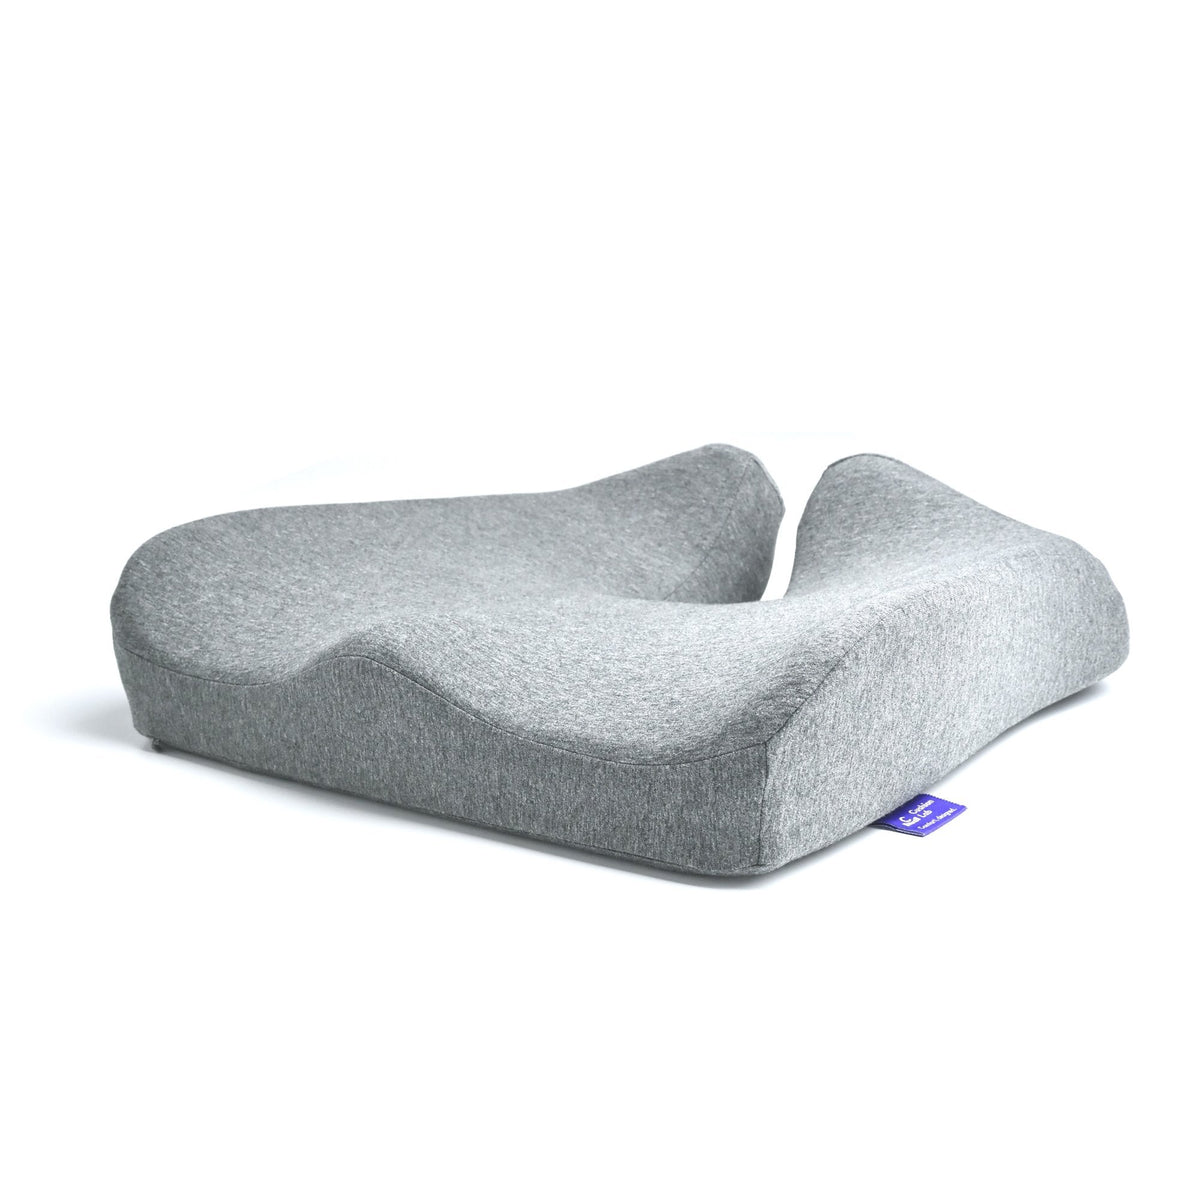 Cushion Lab Pressure Relief Seat Cushion 01